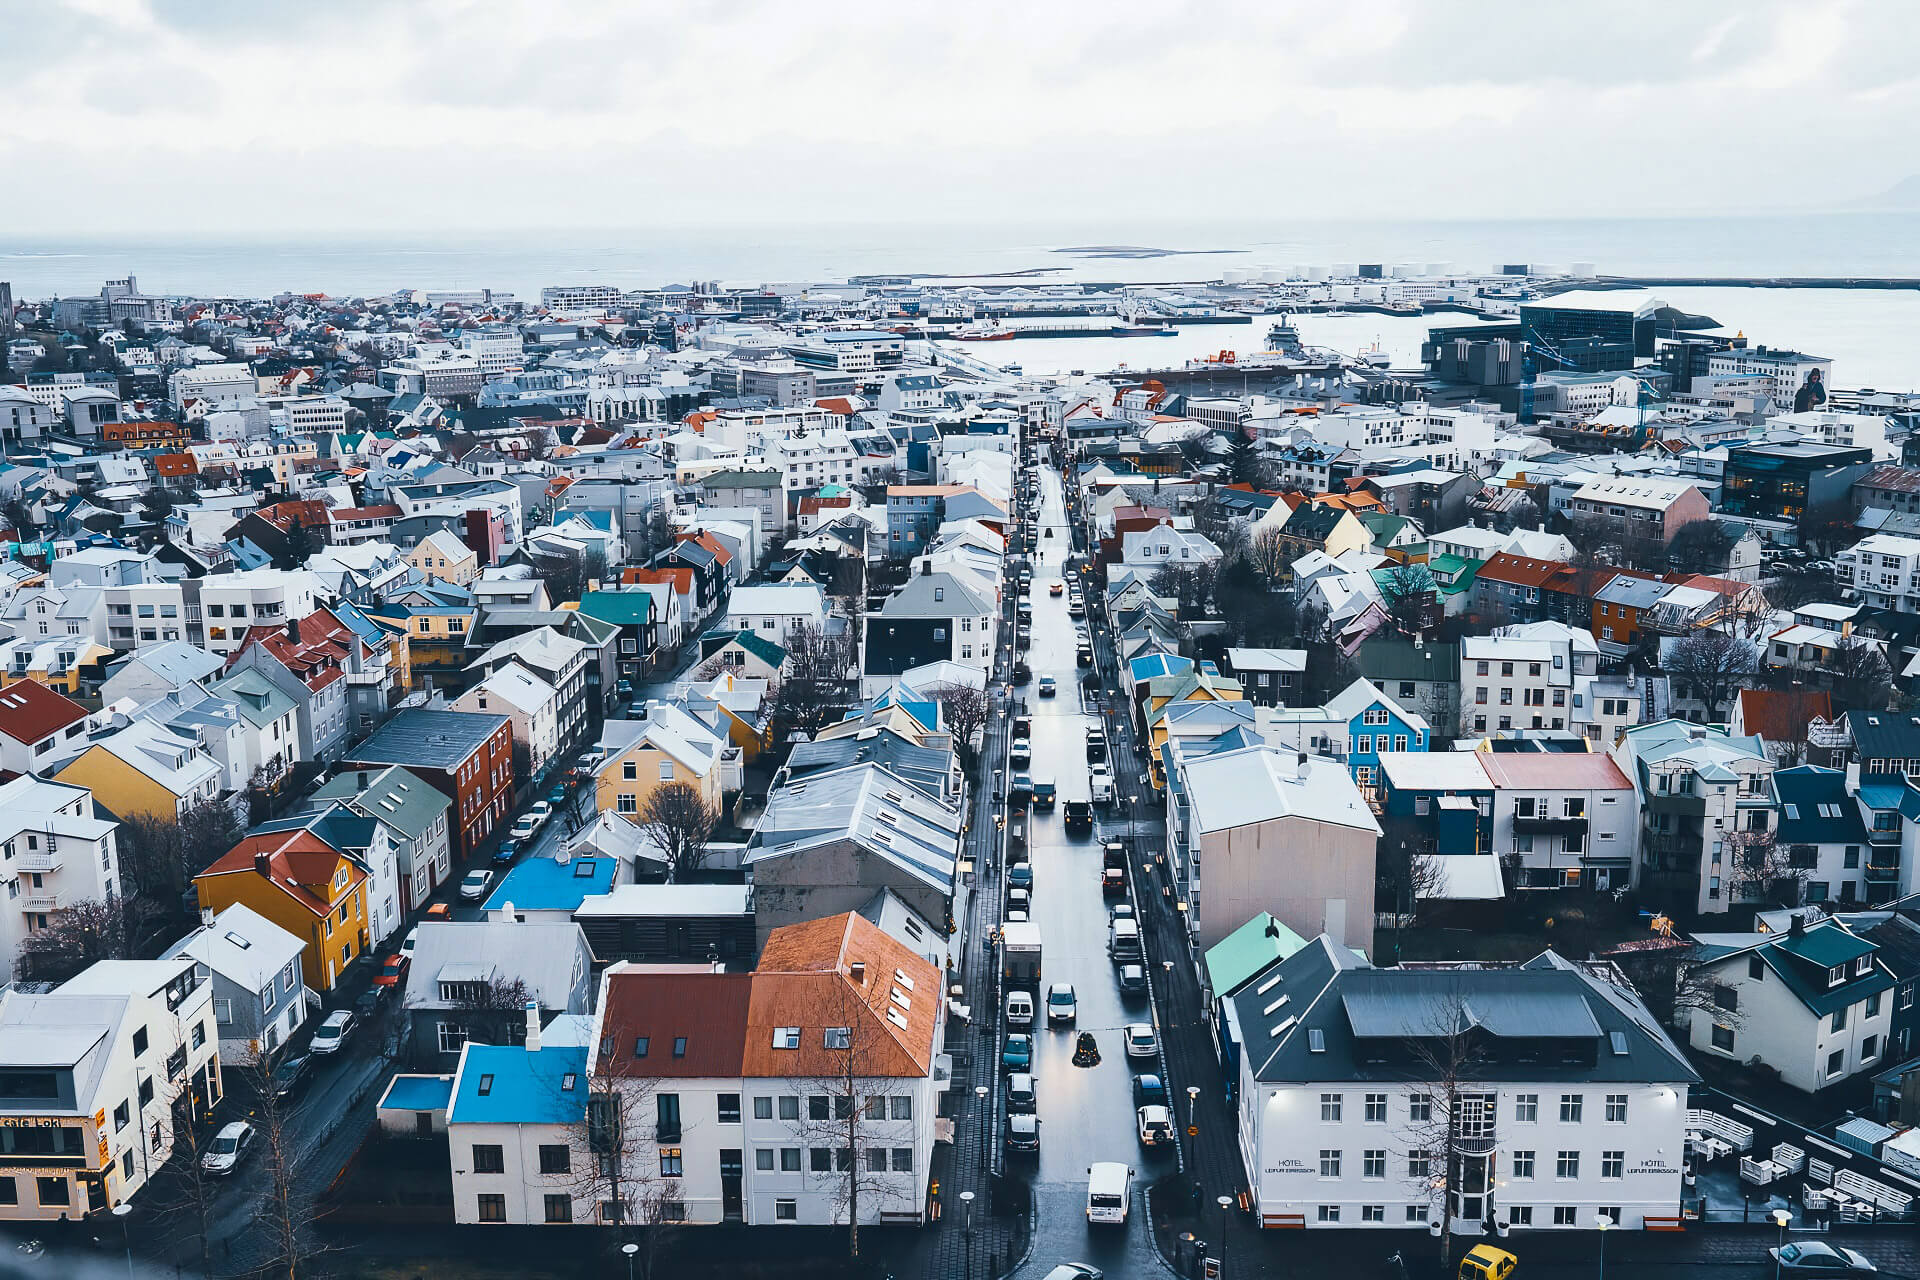 Reykjavik - Offers Everything You Need In Life